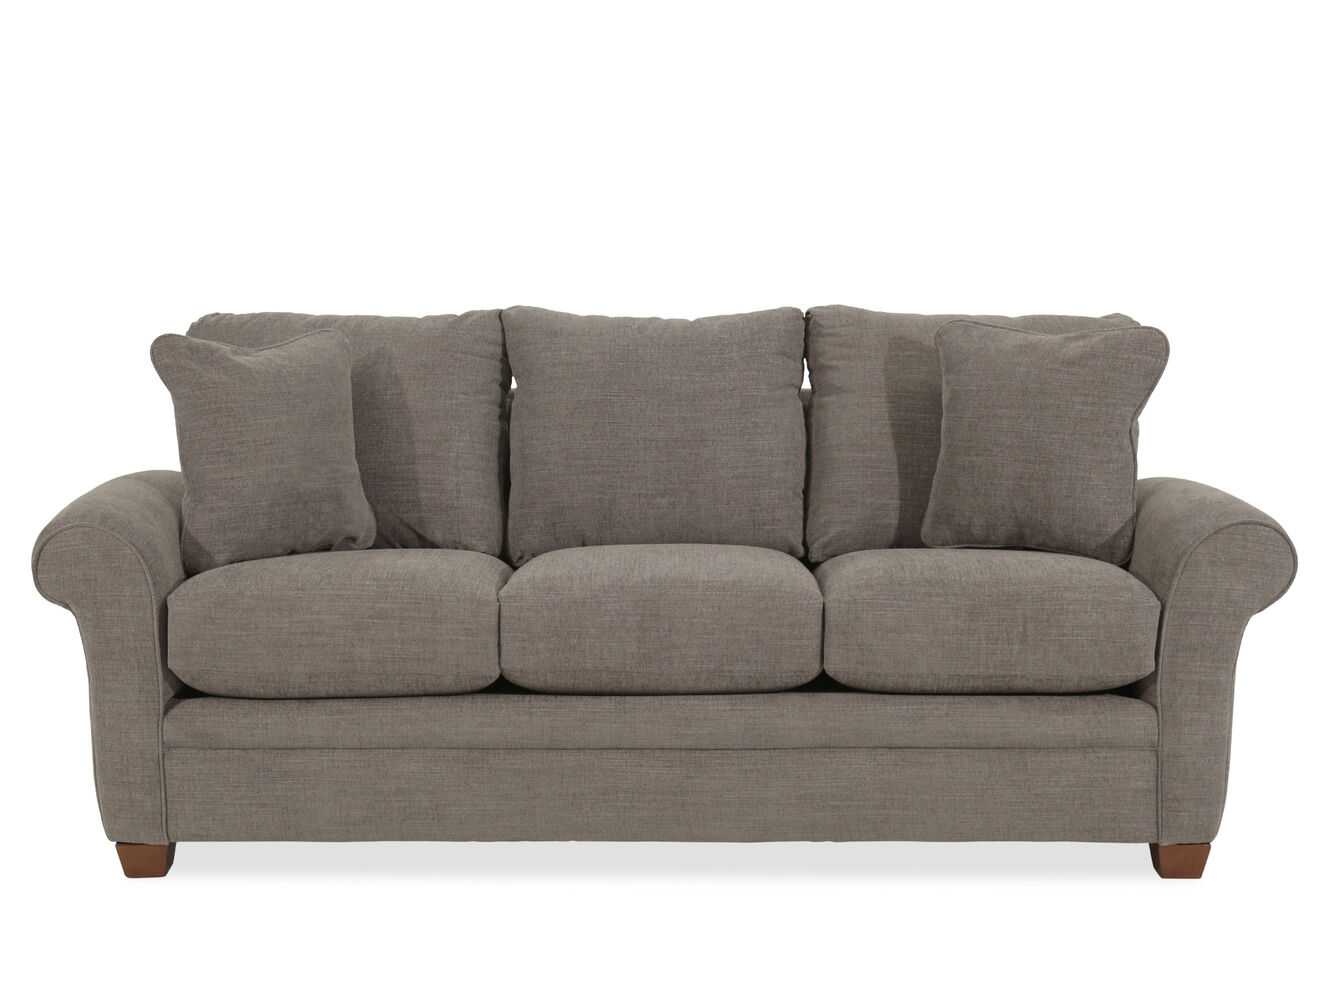 Casual 86quot rolled arm sofa in gray mathis brothers furniture for 86 sectional sofa